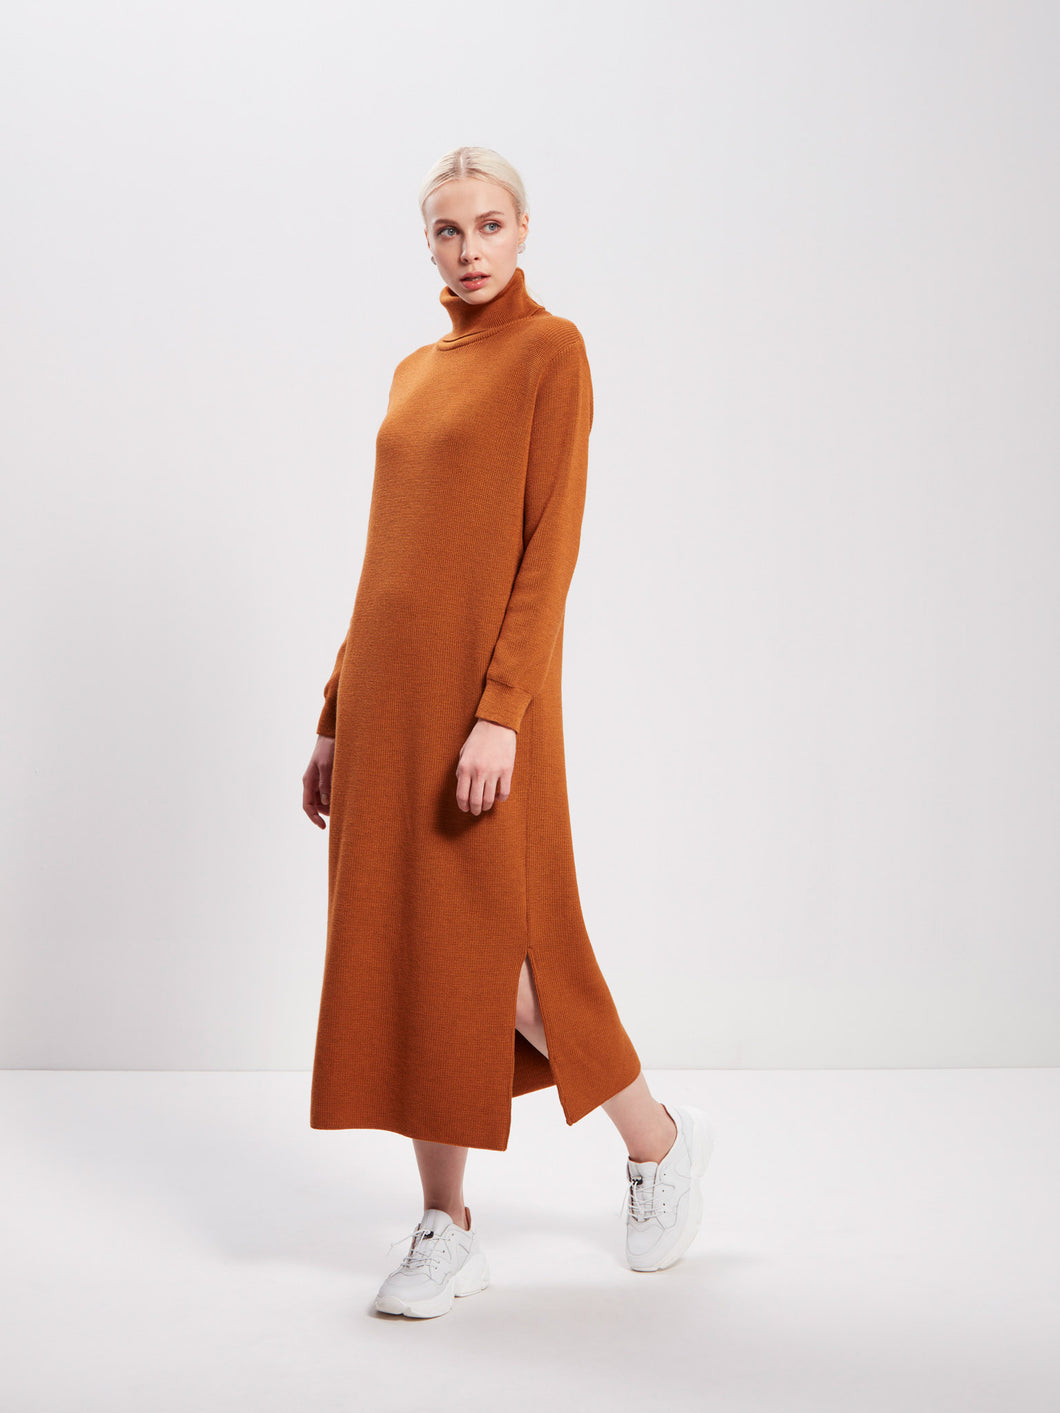 Hug Me Softly Knit Dress, Cognac (Store Tampere)